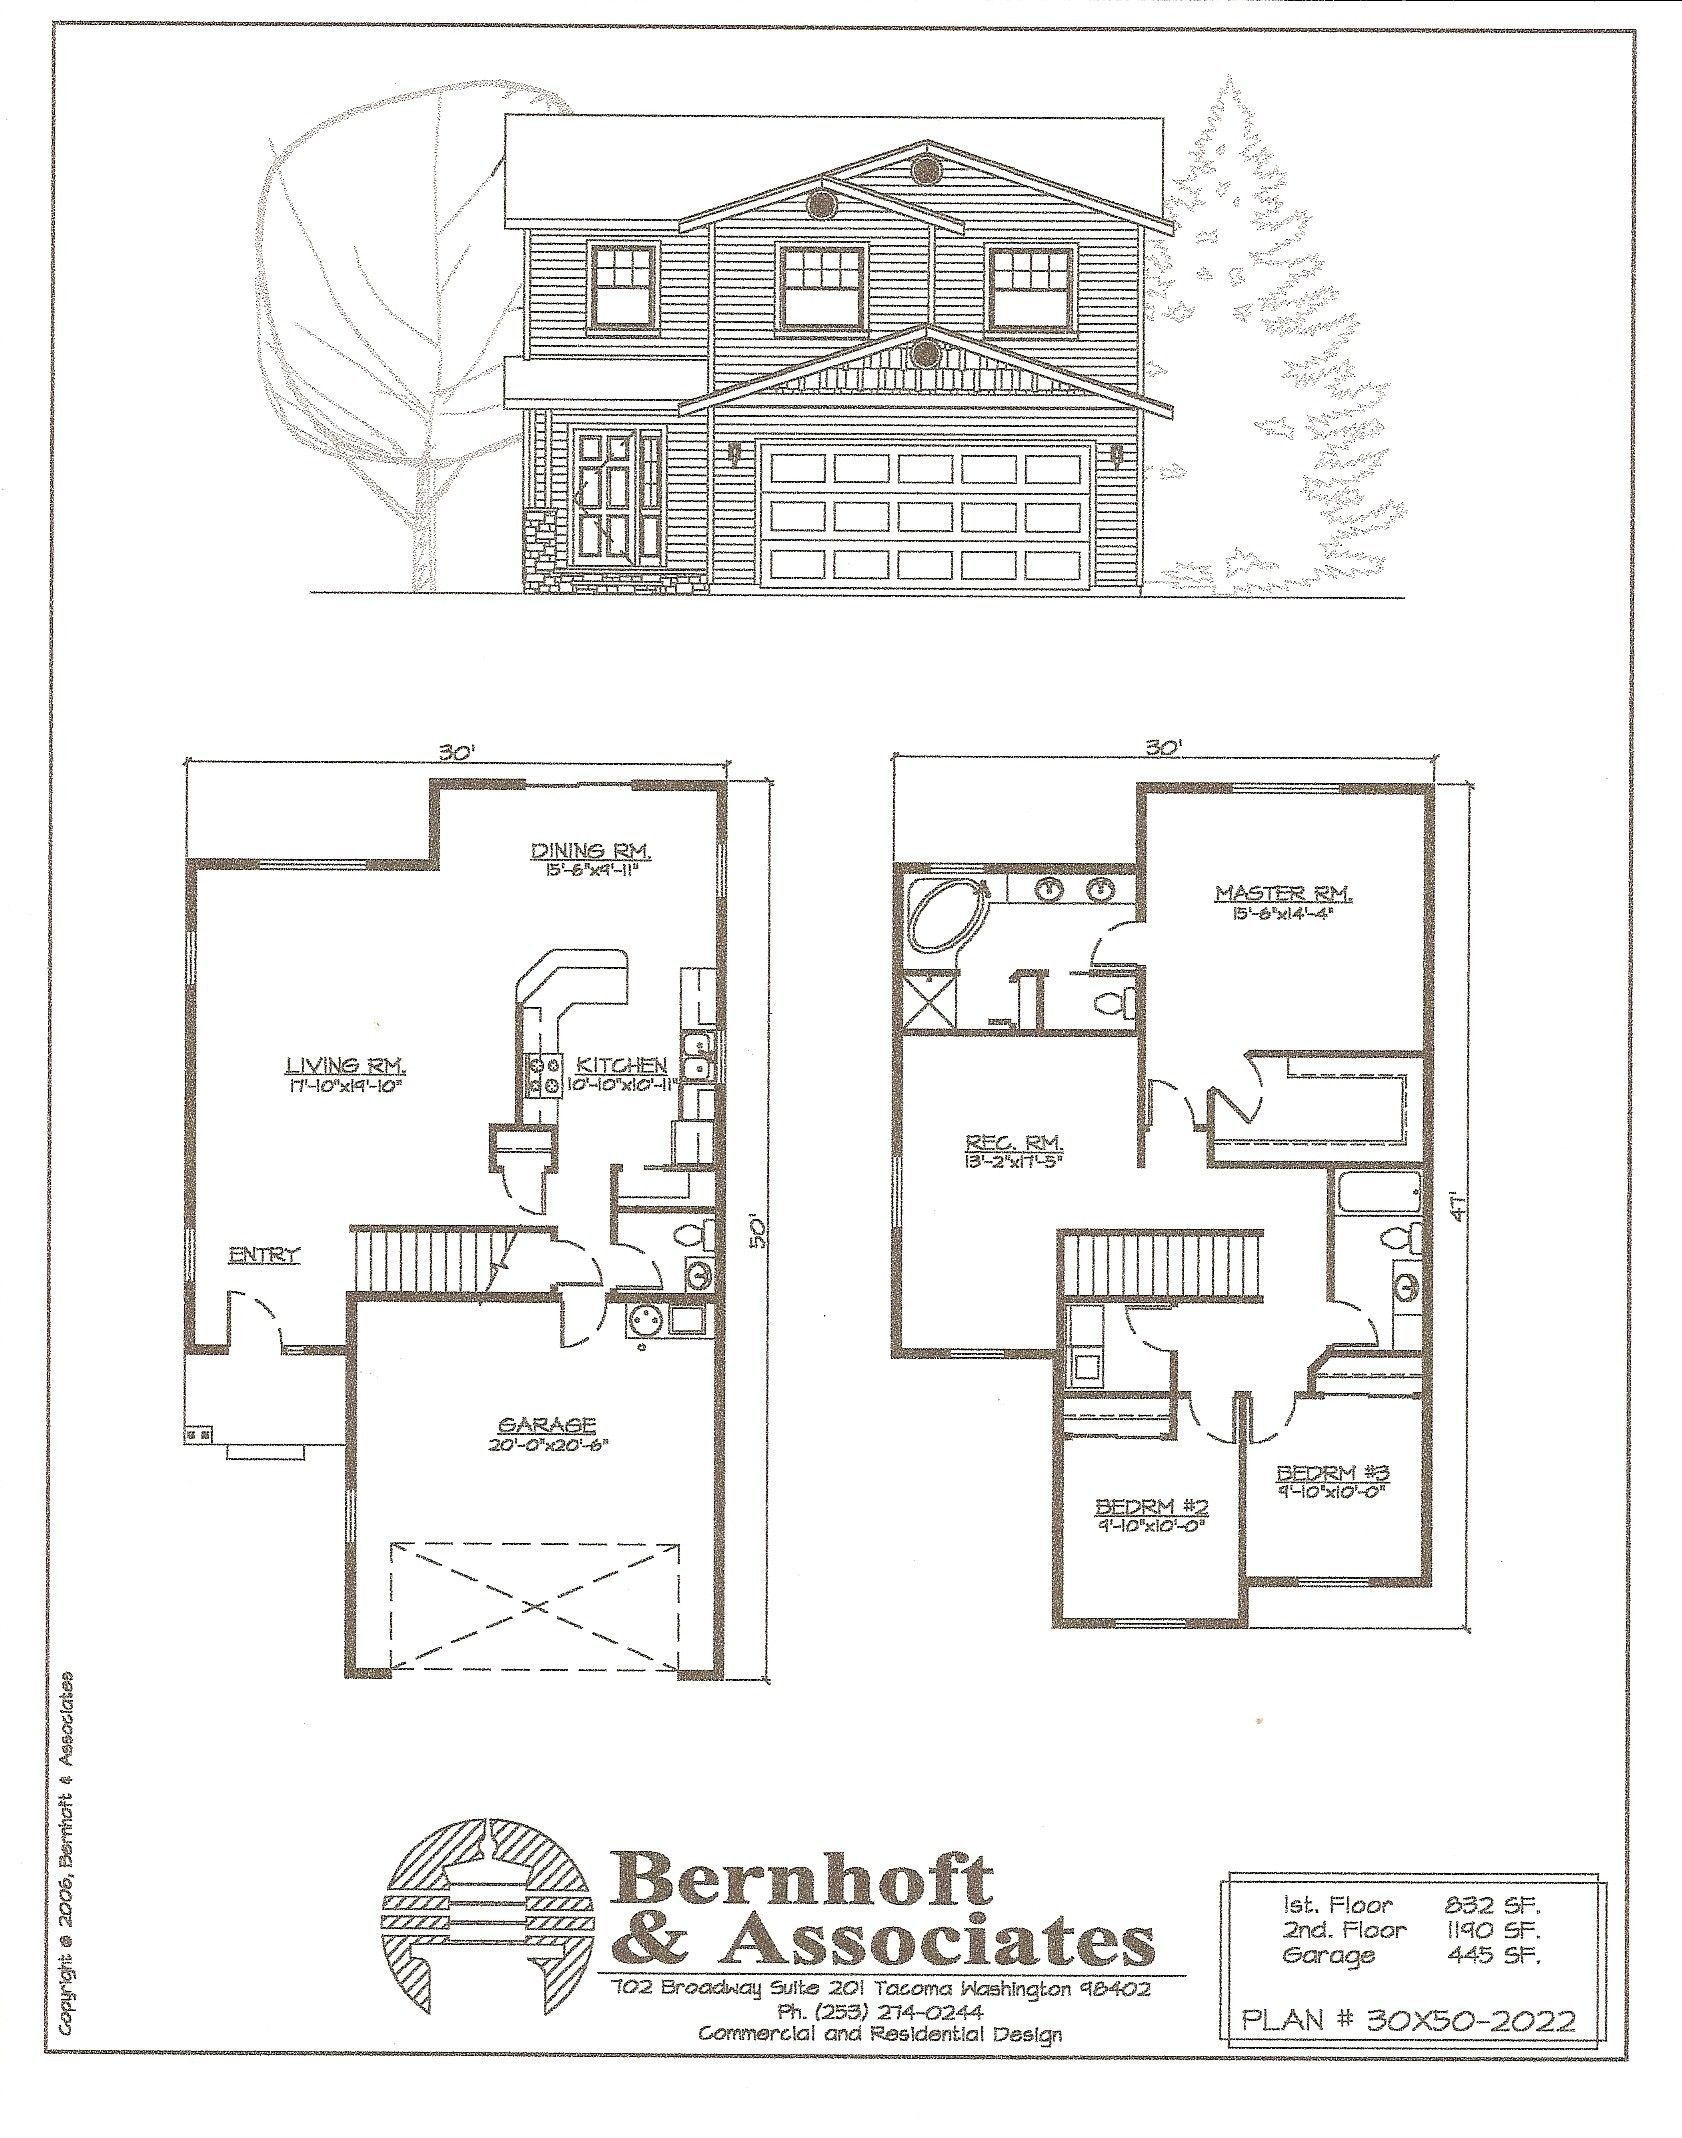 Best Of Free Simple Floor Plan Tool And View Floor Free Houseplans2500sqft Houseplans3000s Floor Plan Design Simple Floor Plans Simple House Design